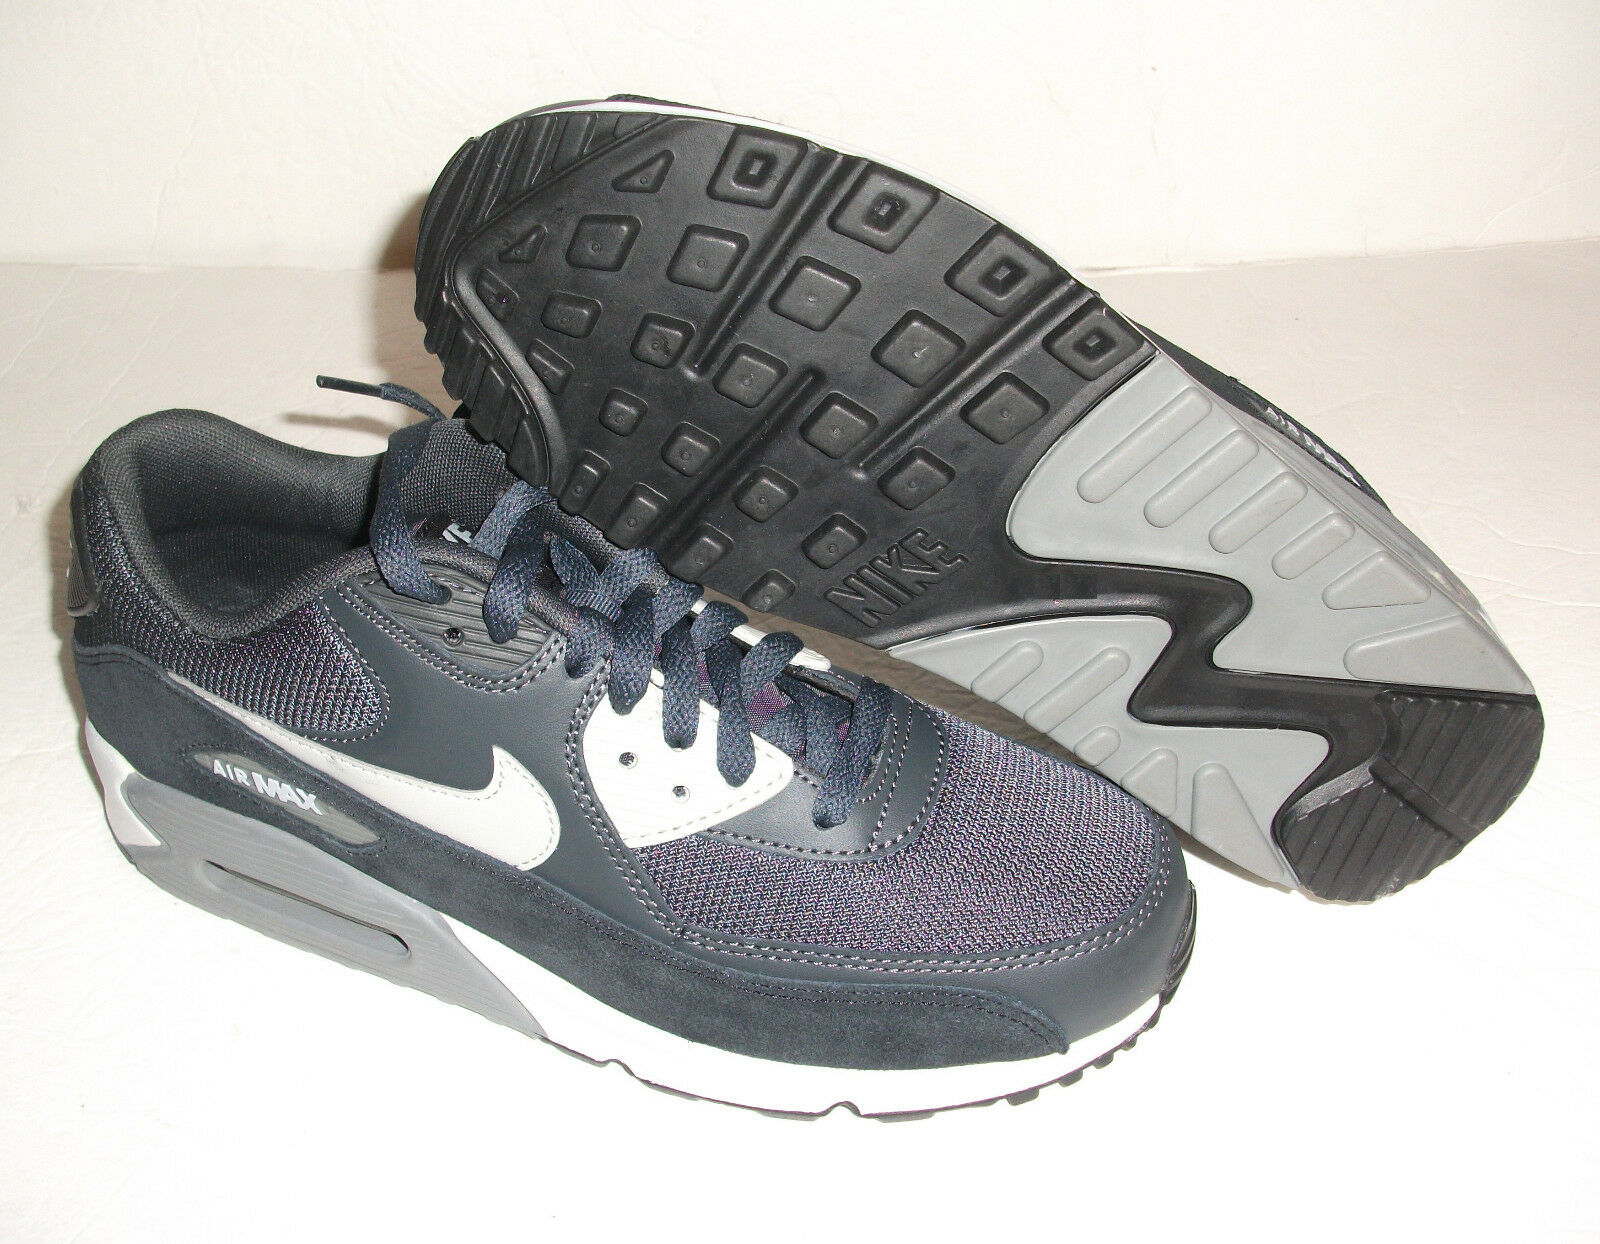 New Nike Air Max 90 Running, Men's Size 9.5, Anthracite/Black, 537384-035